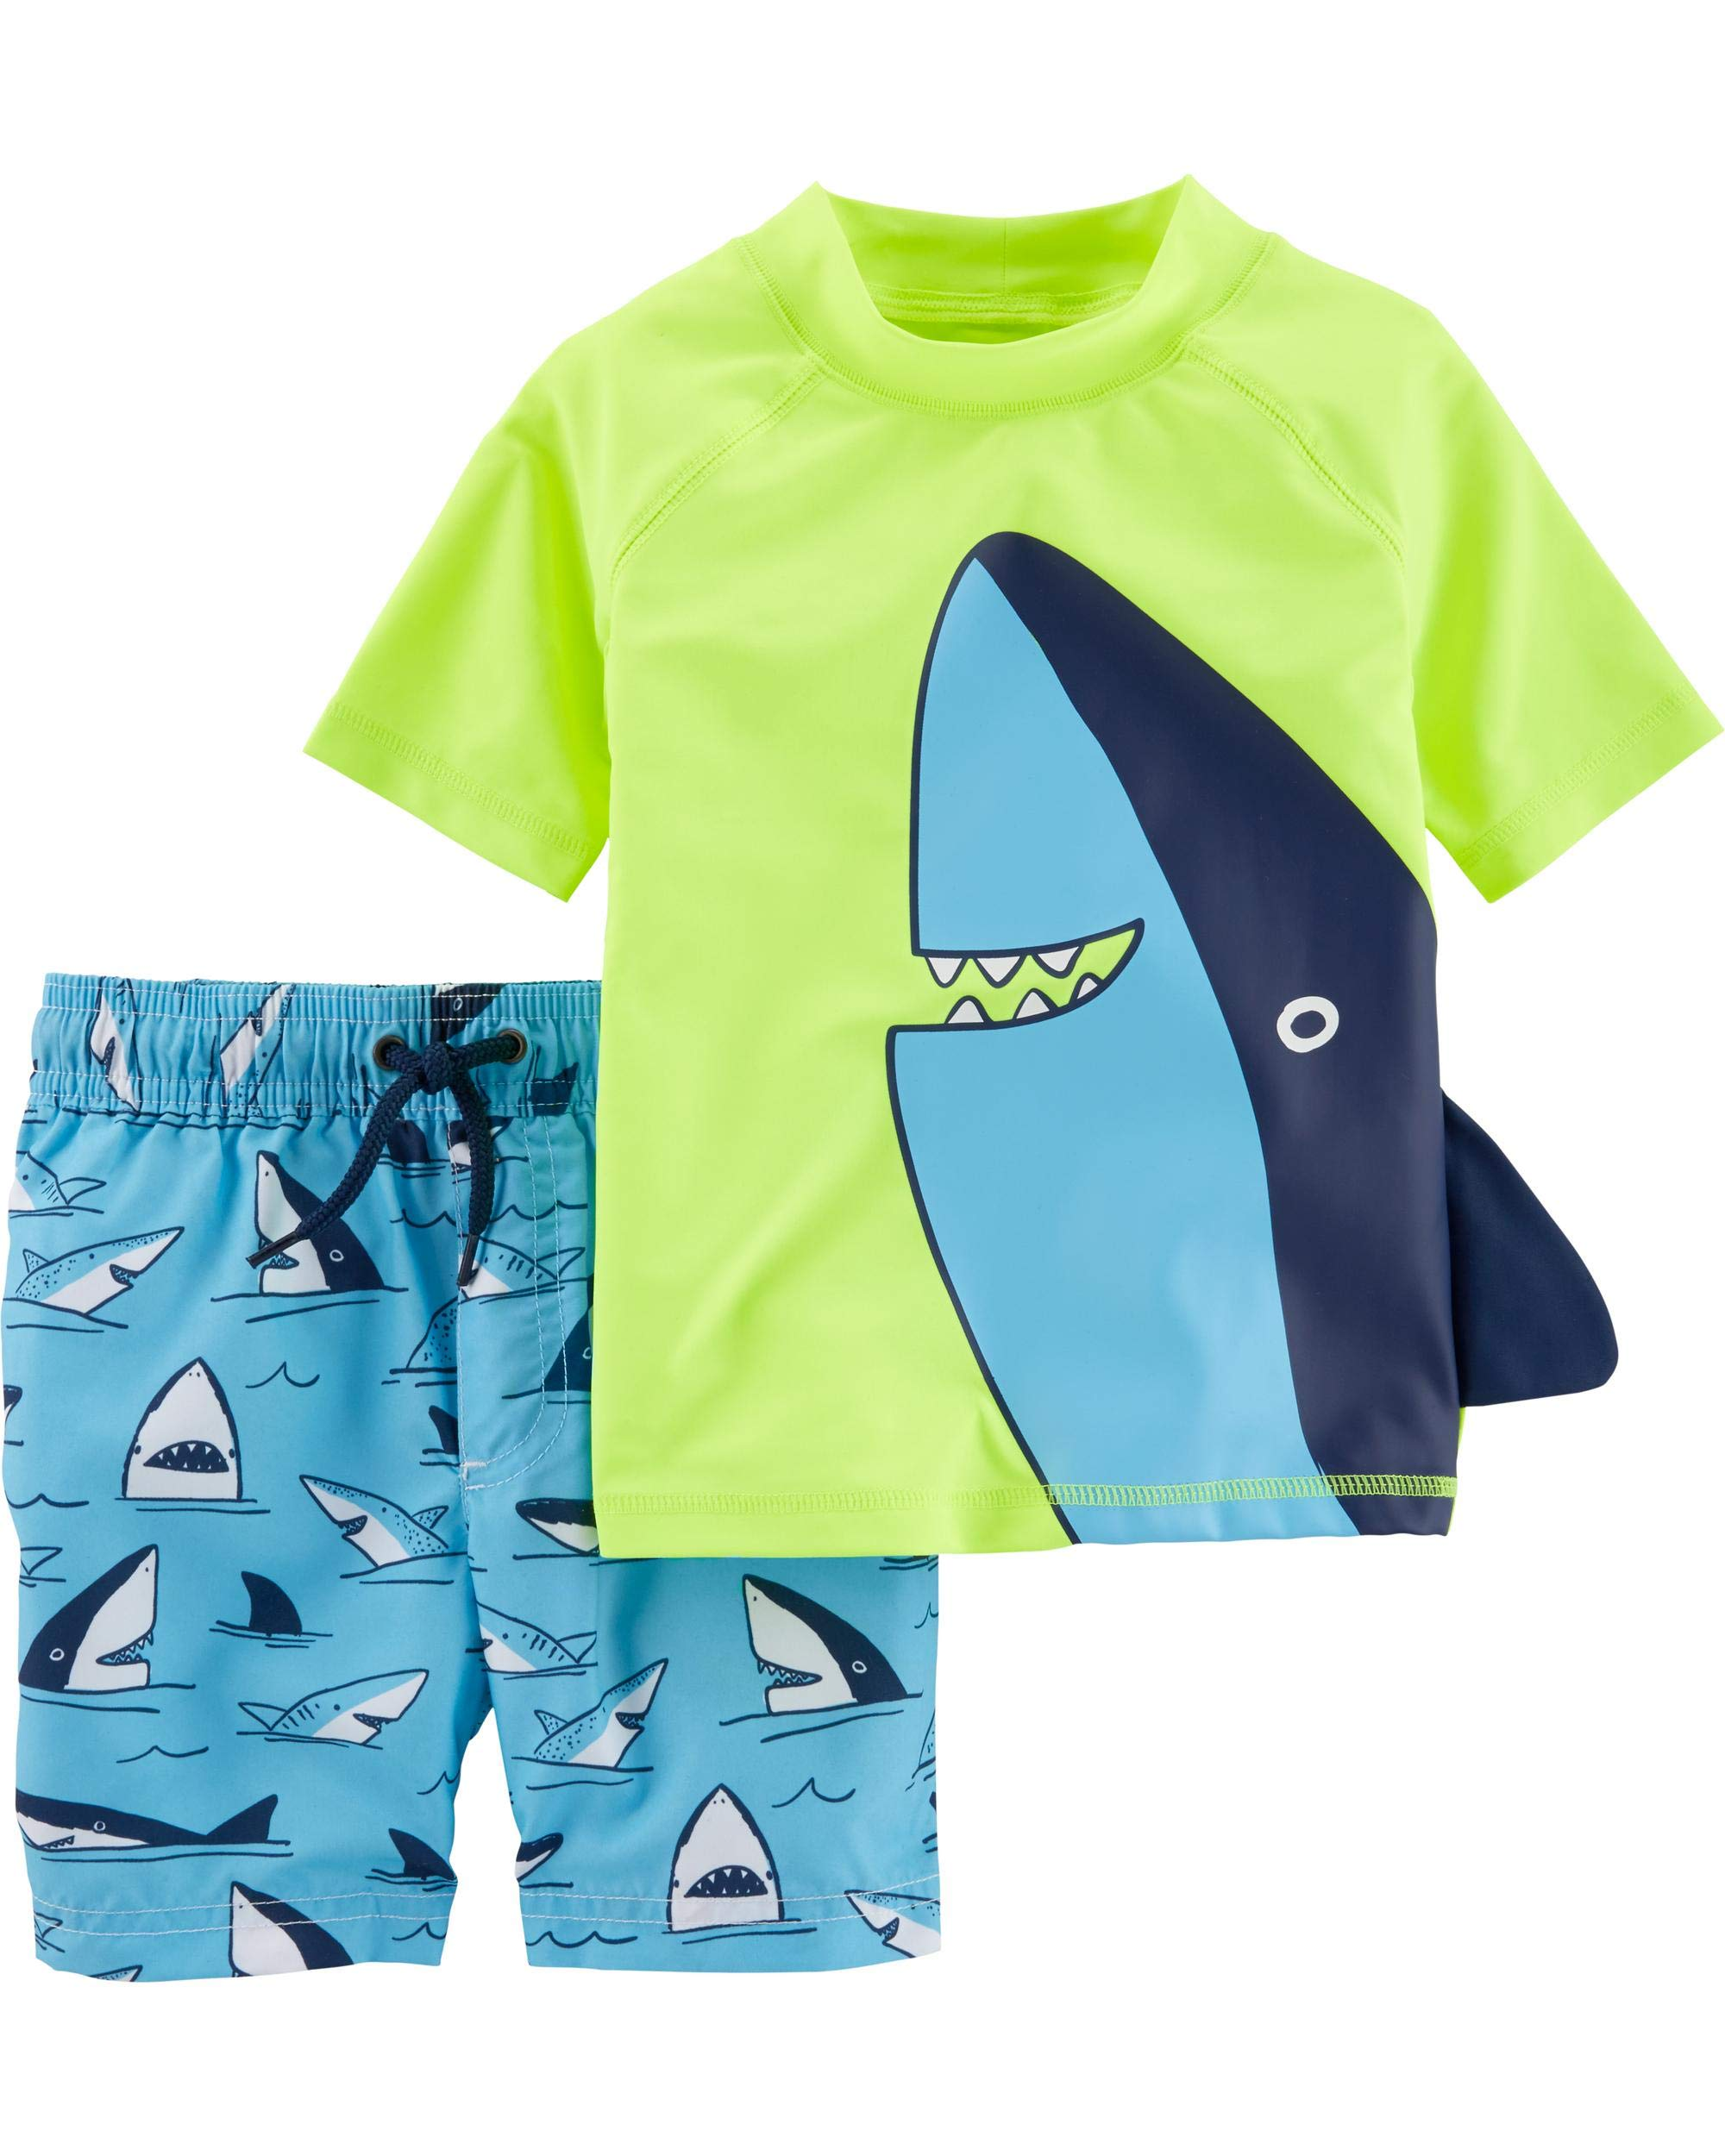 Carter's Toddler Boys' Rashguard Swim Set, Shark